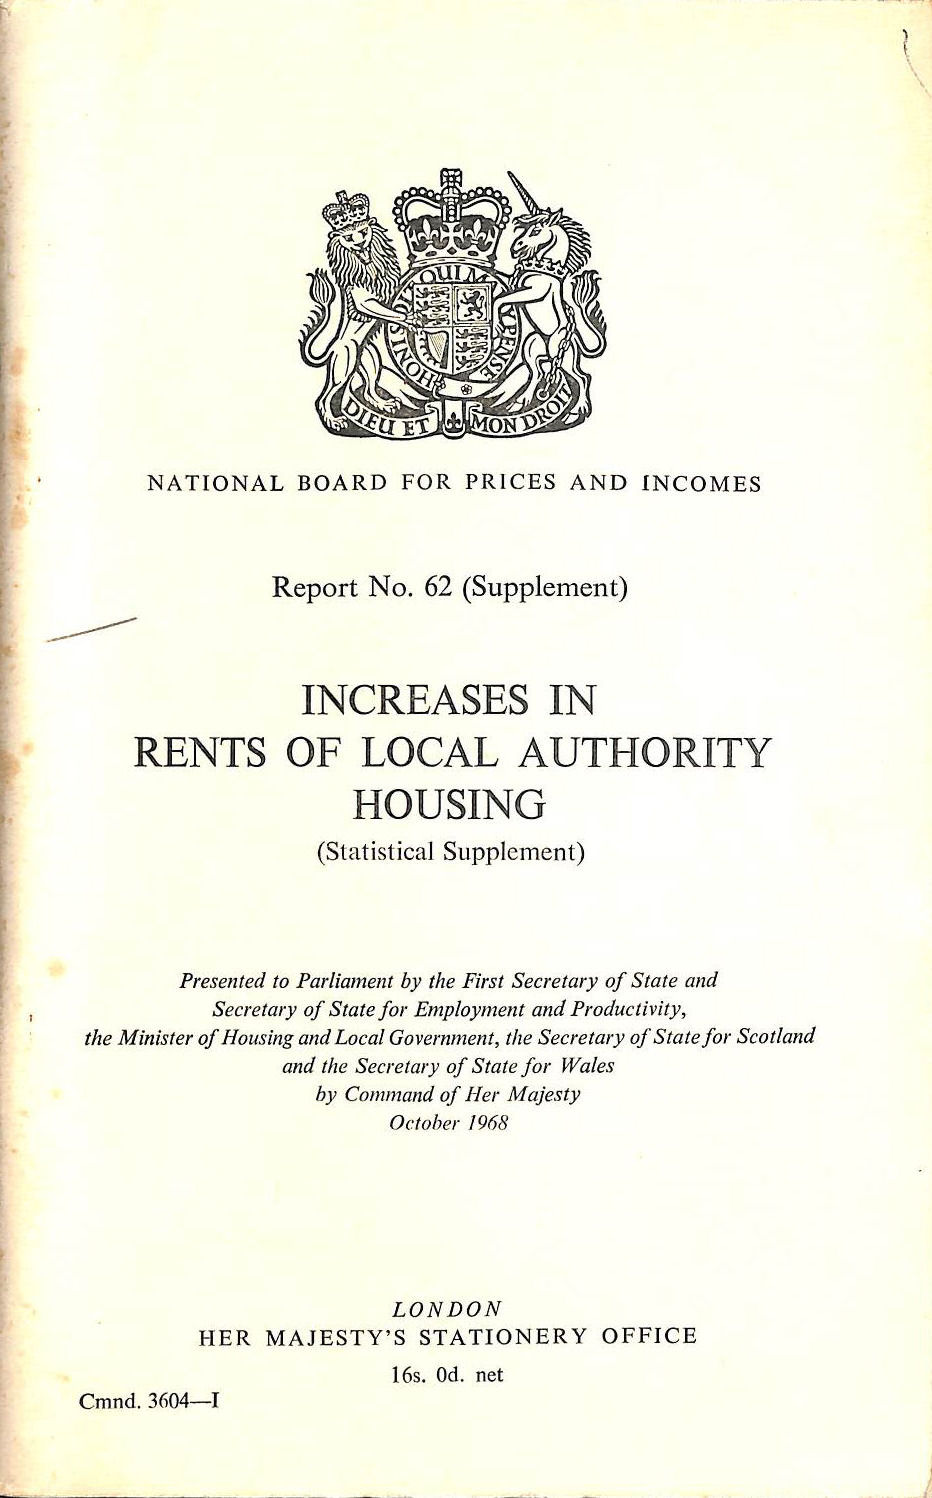 Image for Increases in rents of local authority housing (Cmnd. 3604-1)